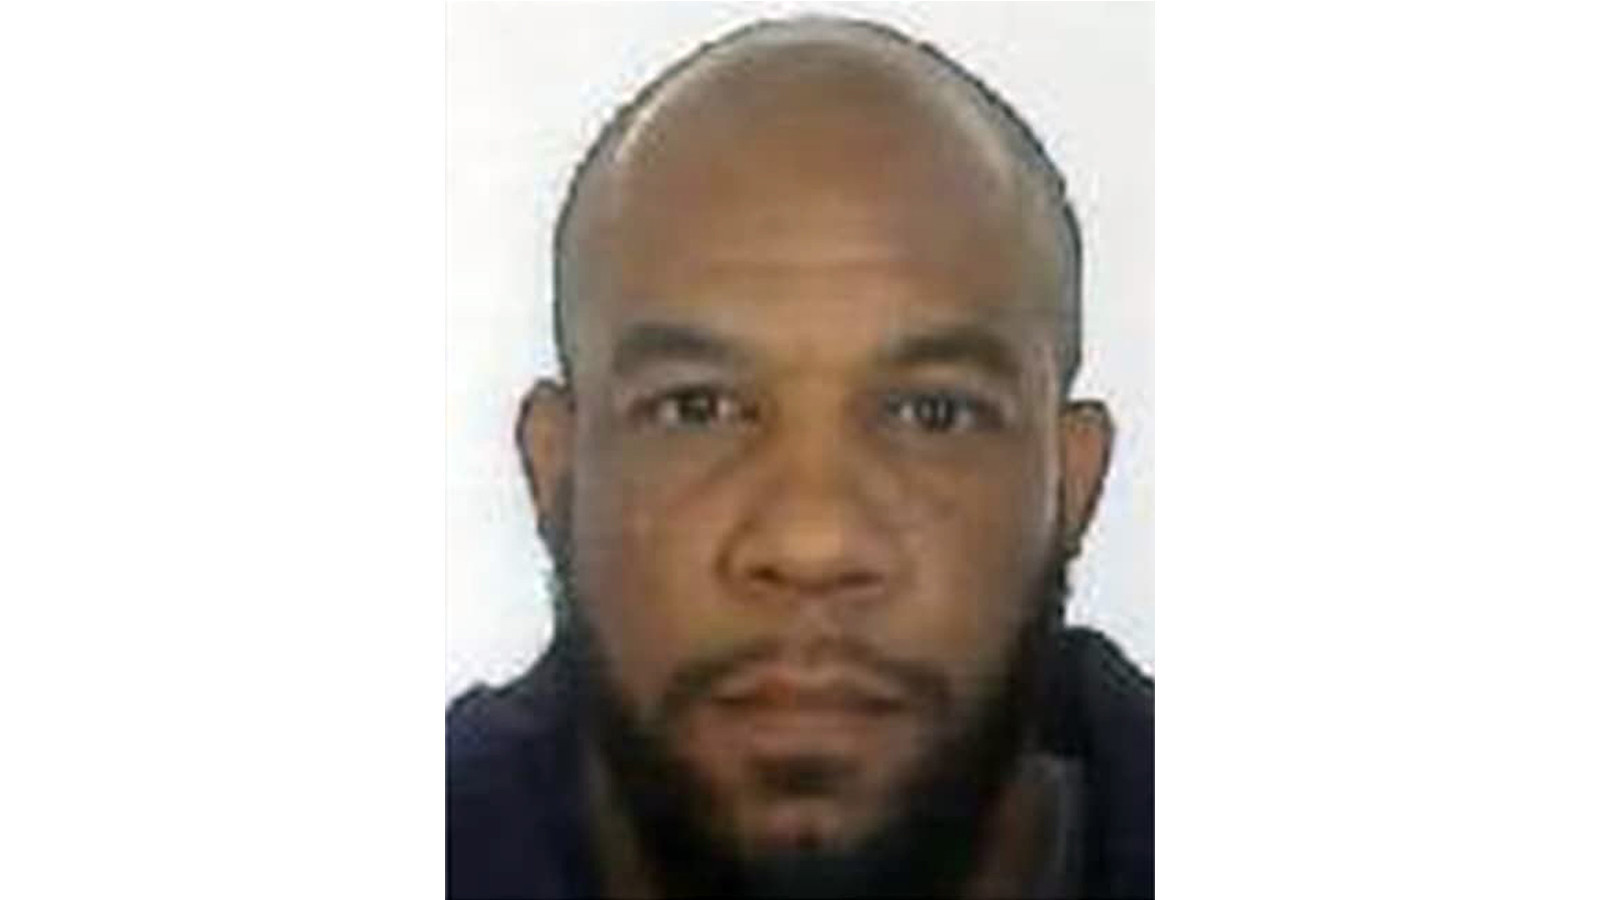 London attacker made multiple trips to Saudi Arabia